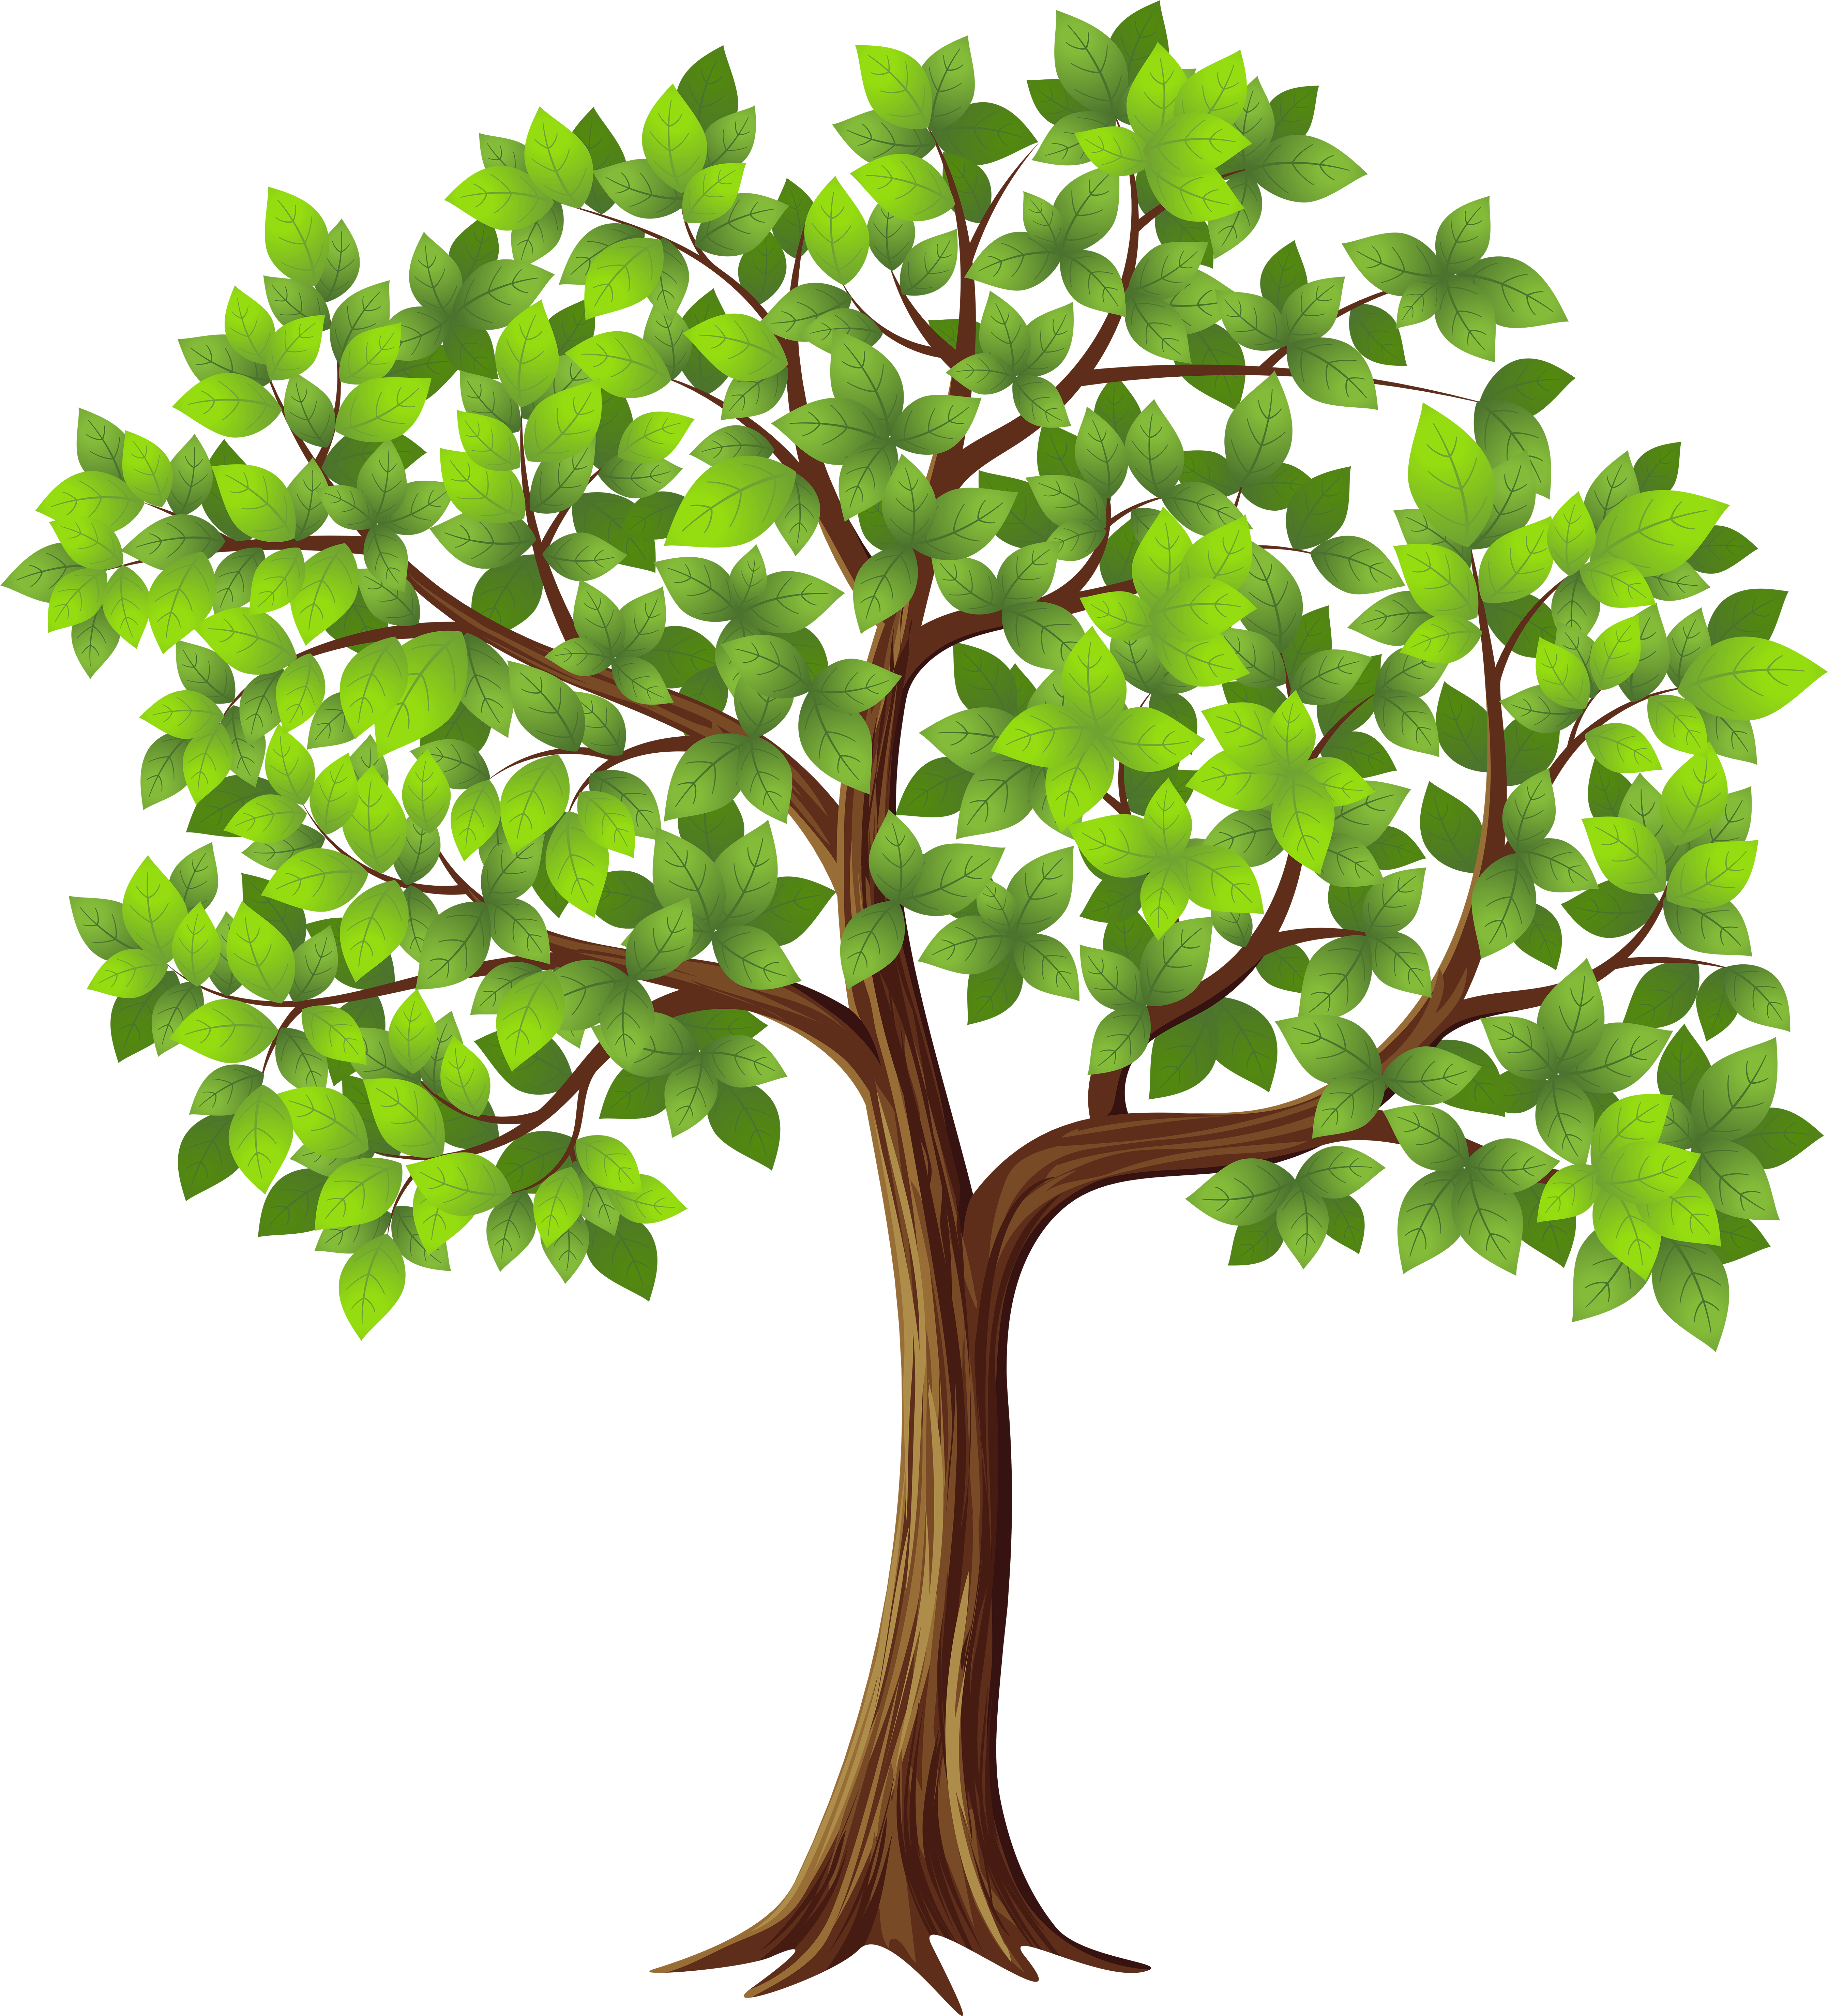 Transparent Tree Cliparts Free Download Clip Art - Fig ...